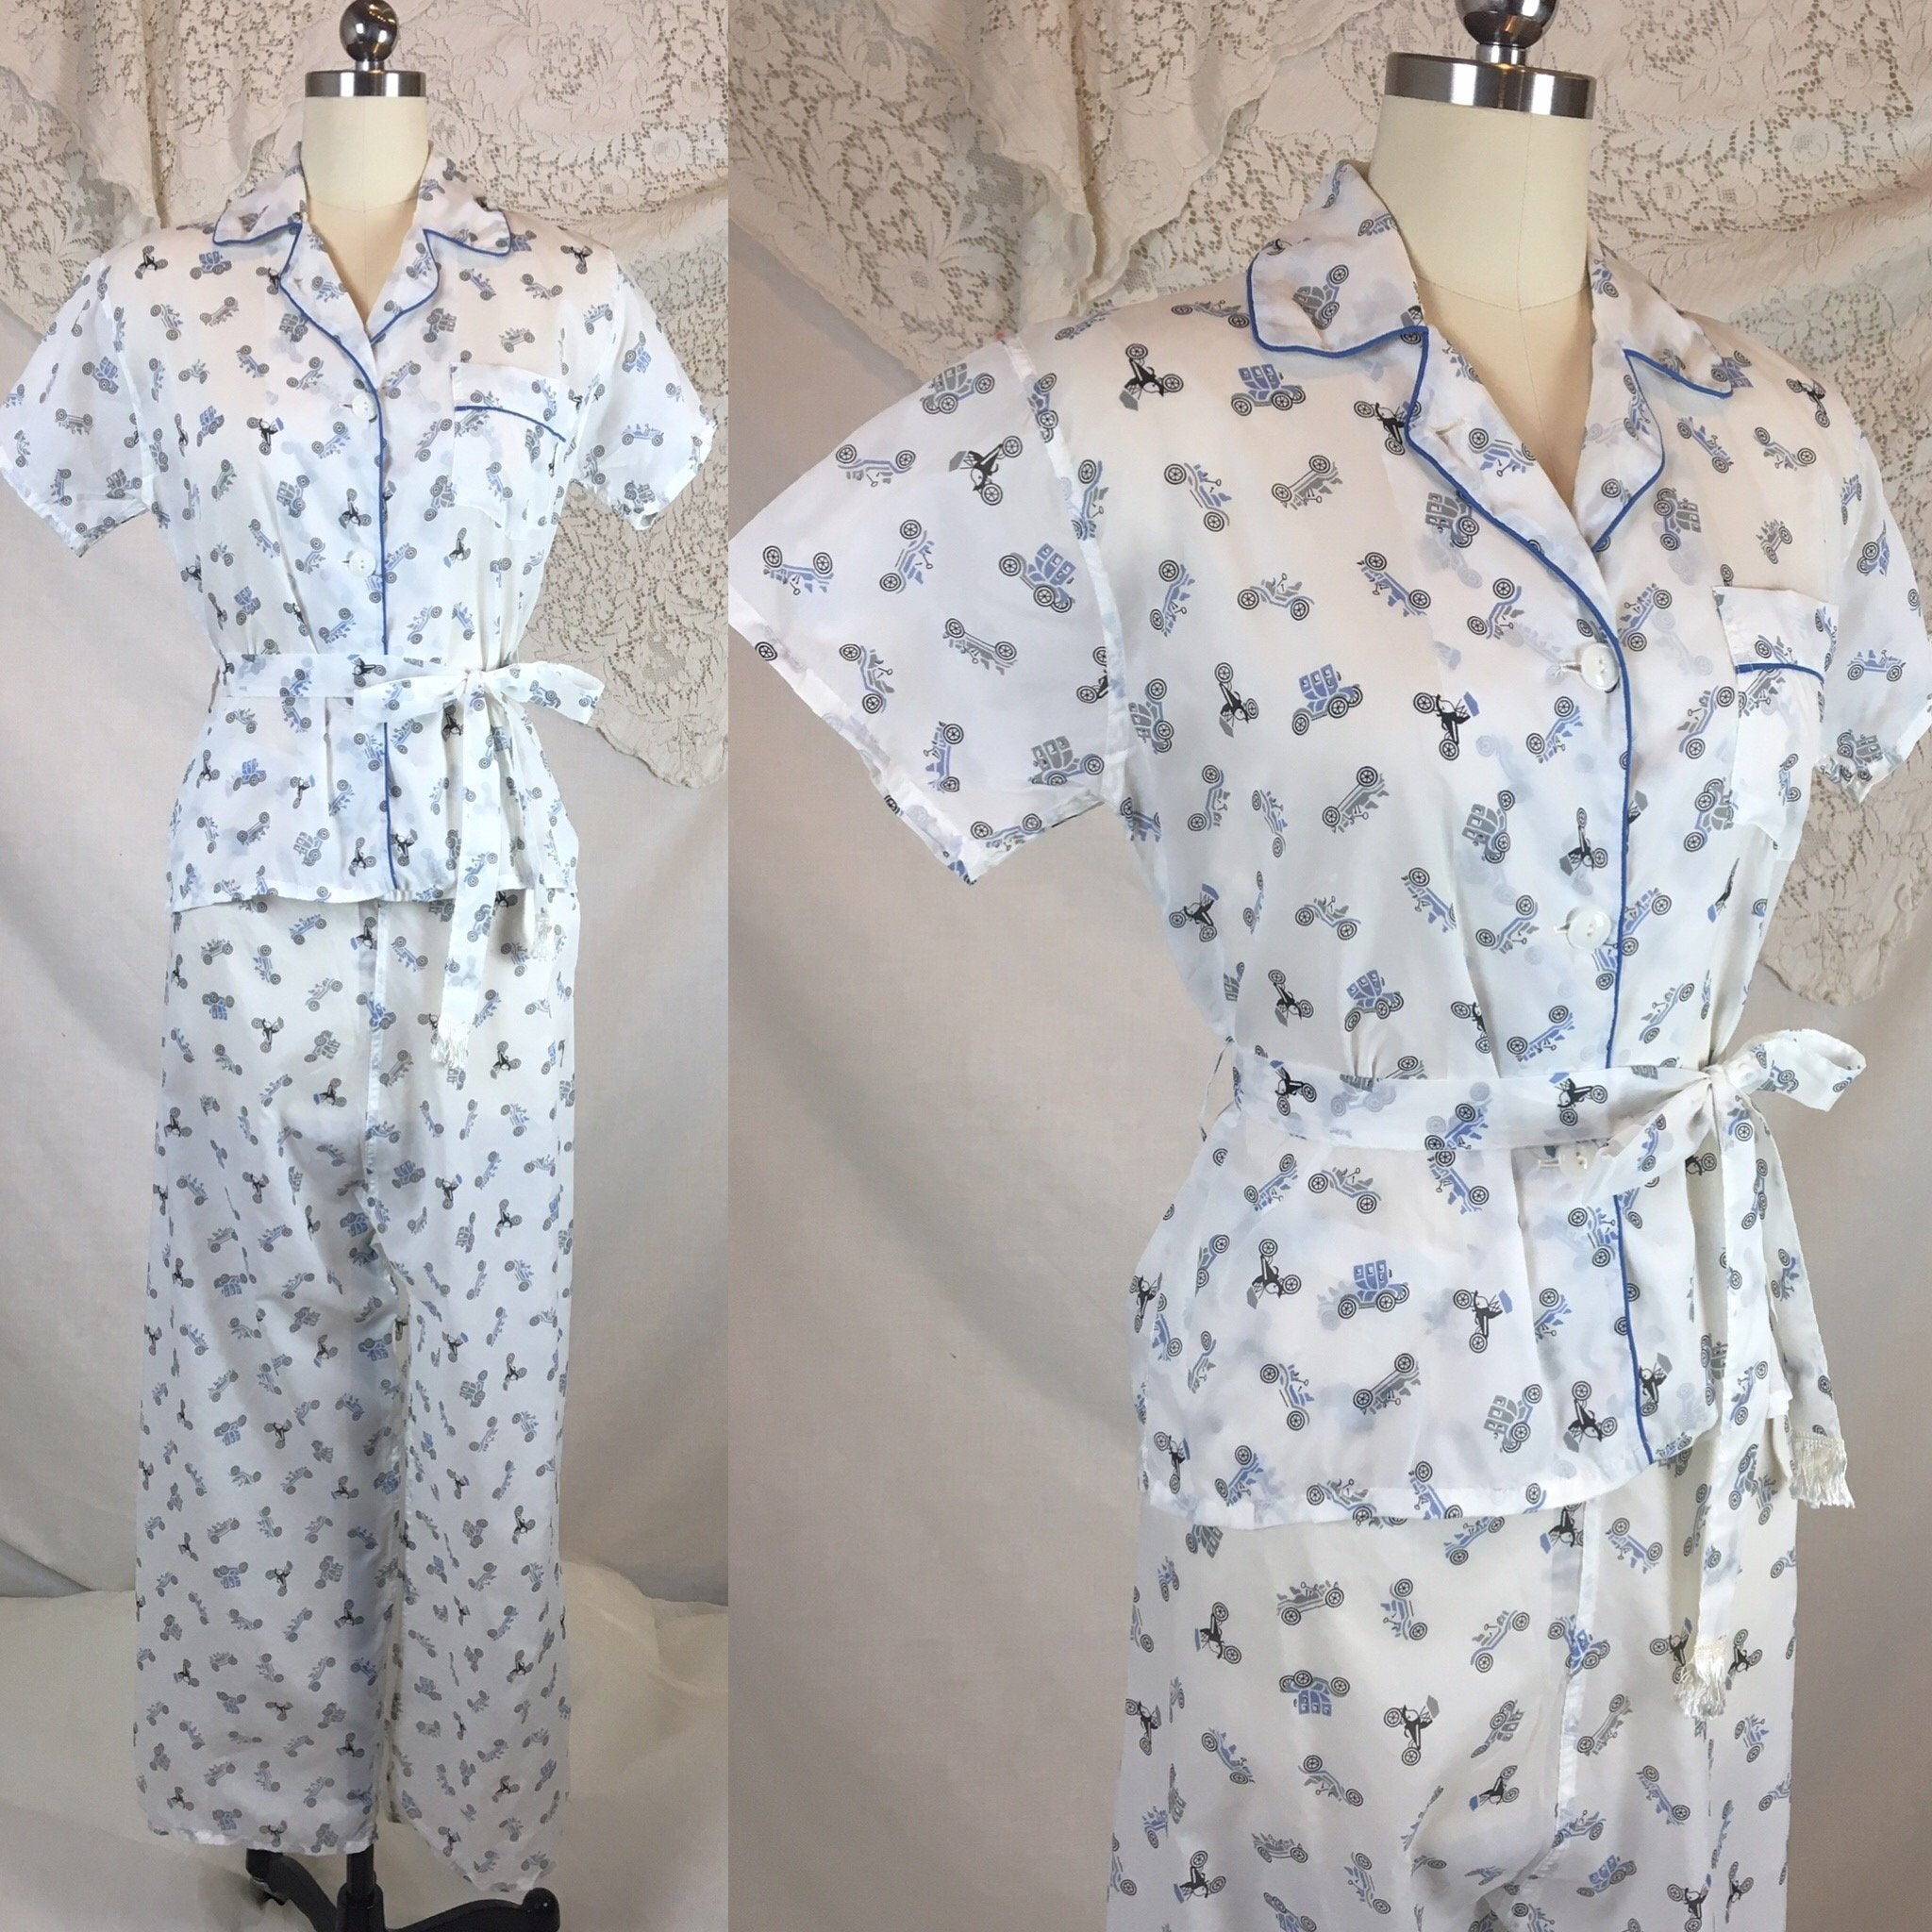 Vintage 1950's Pajama Set | Sheer White Nylon with Blue Car Print & Fringe Sash Tie | Carole | Size SM, MED - Daggers & Dames